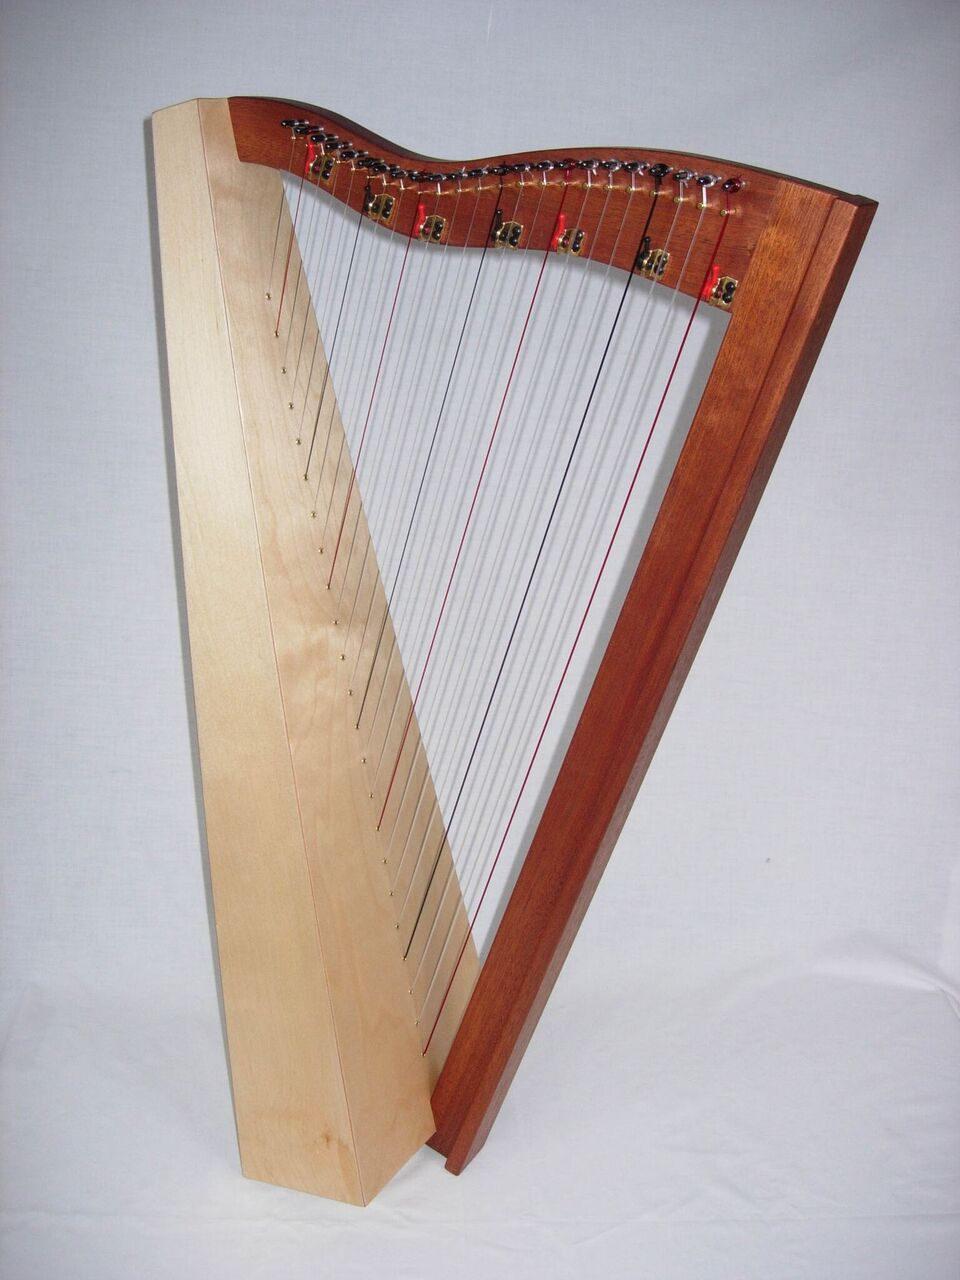 23 String with Levers